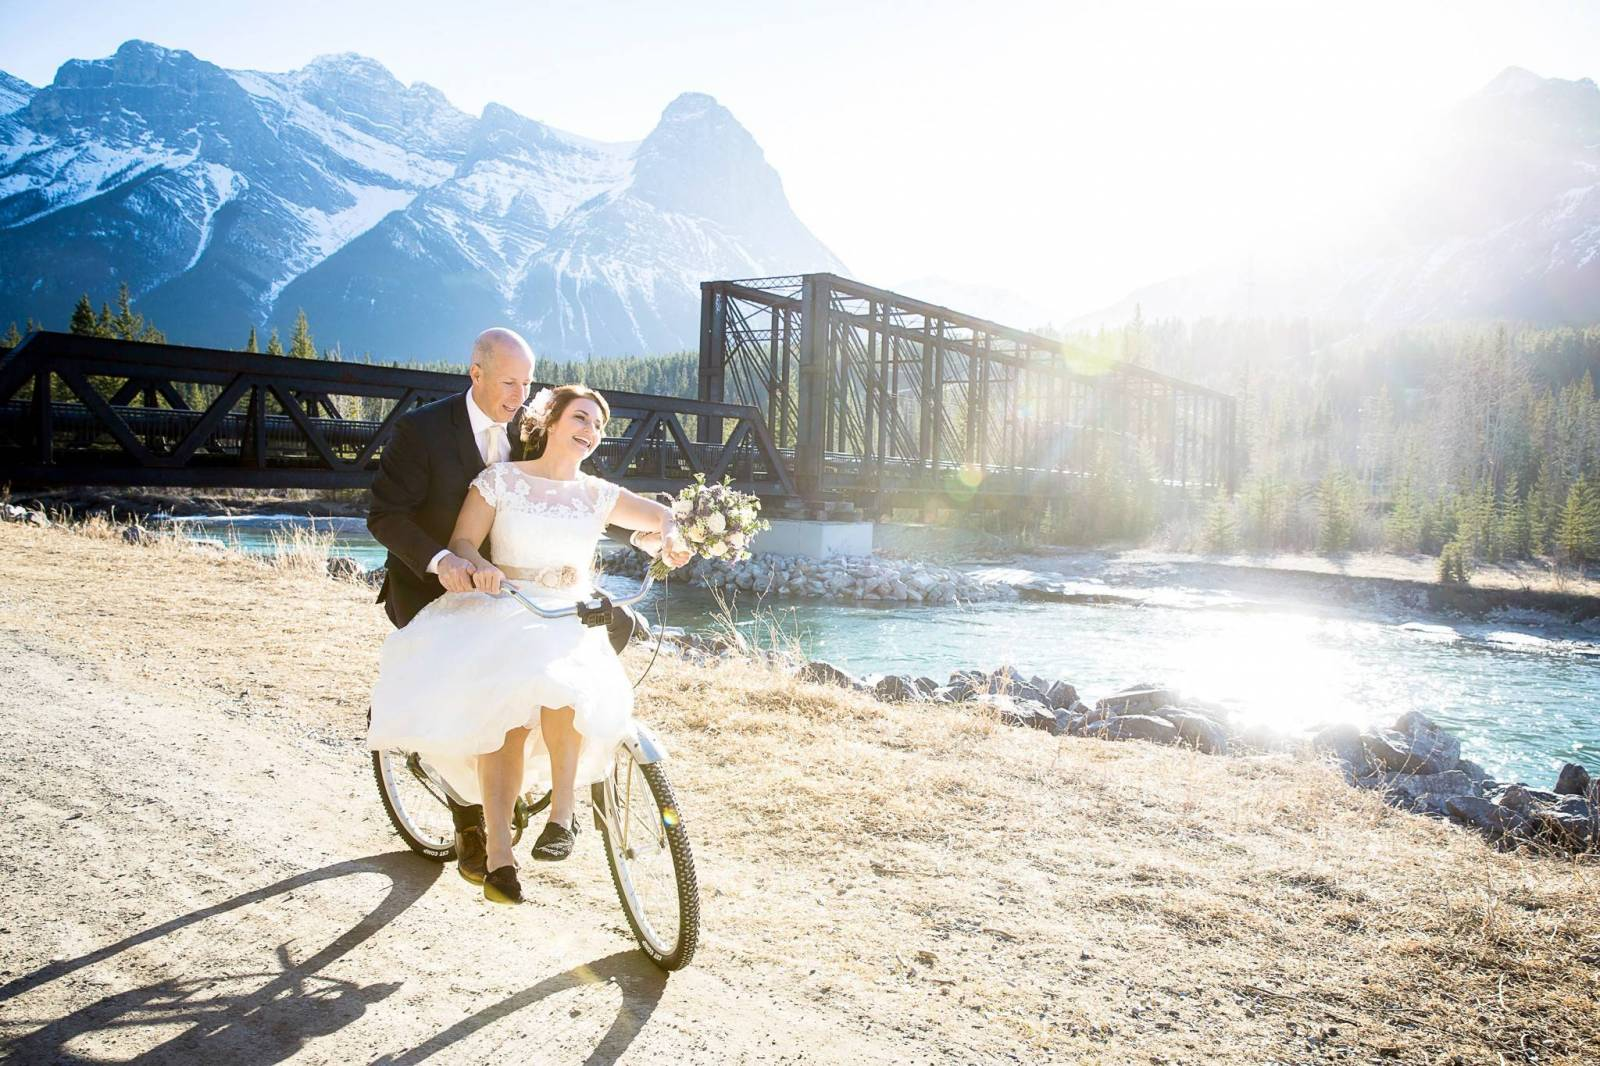 Banff Elopement Photographer, Banff Wedding Photographer, Emerald Lake Lodge Elopement, Emerald Lake